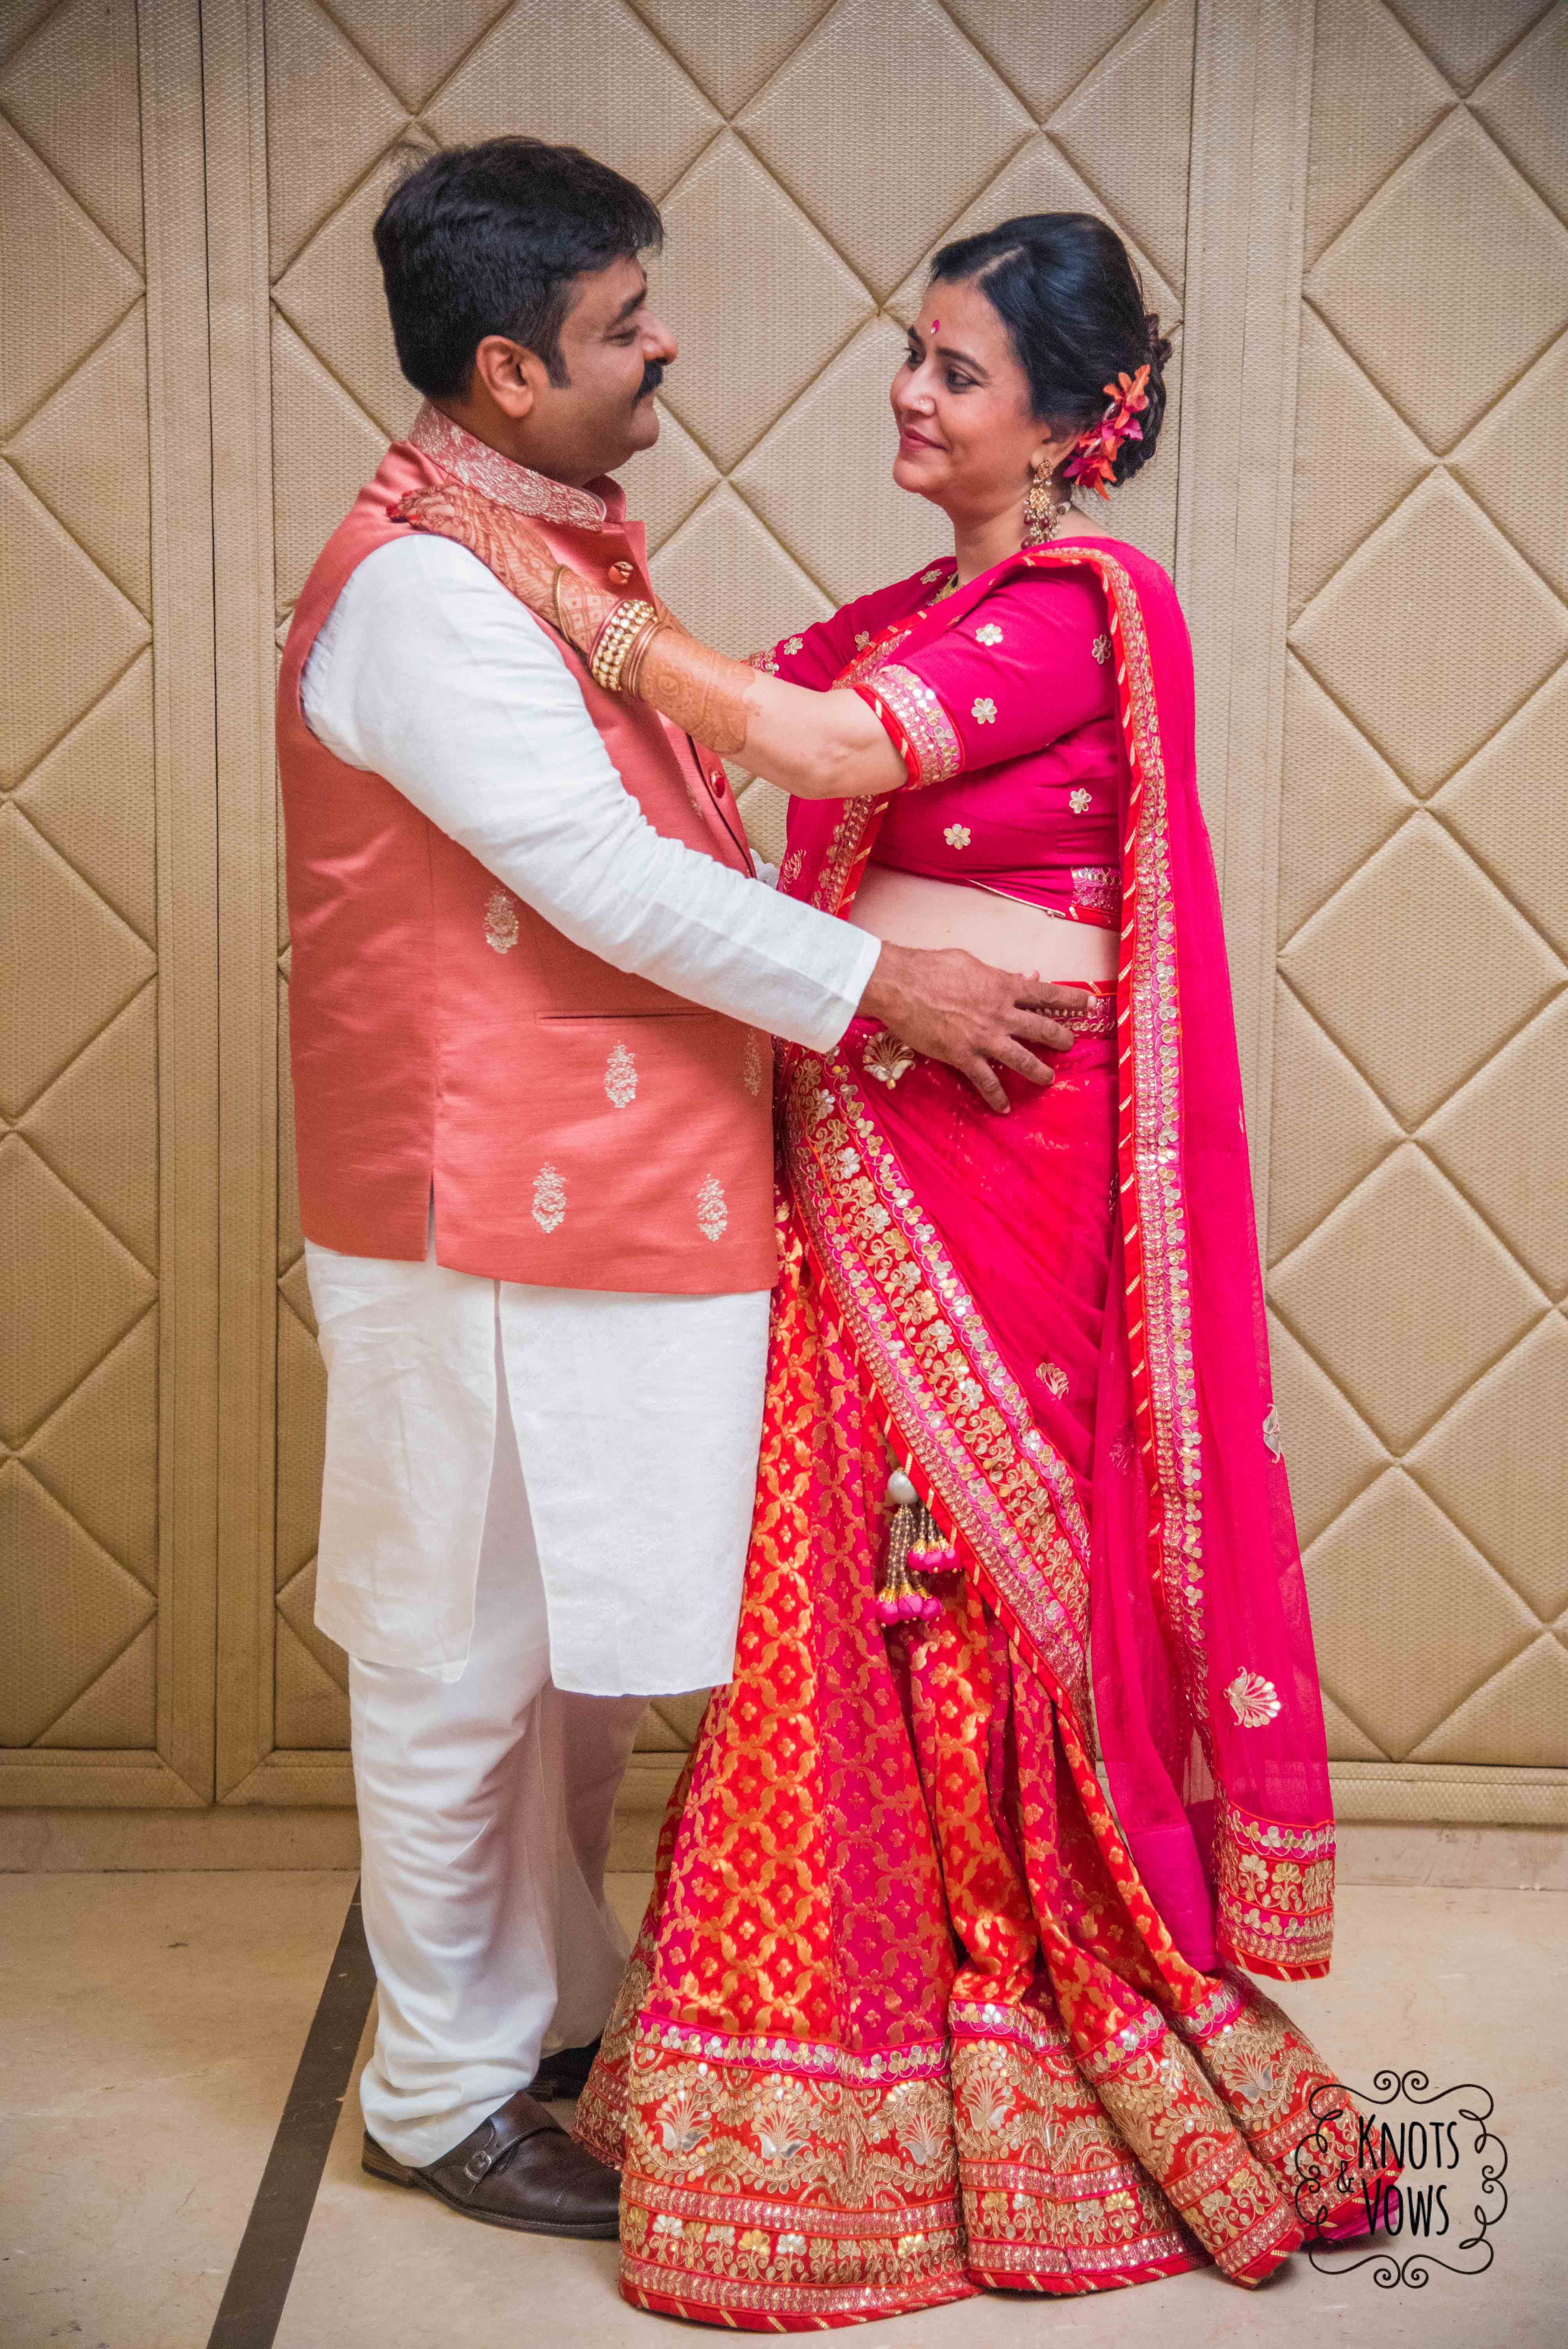 Wedding Photograpy Mumbai Gujrati Wedding